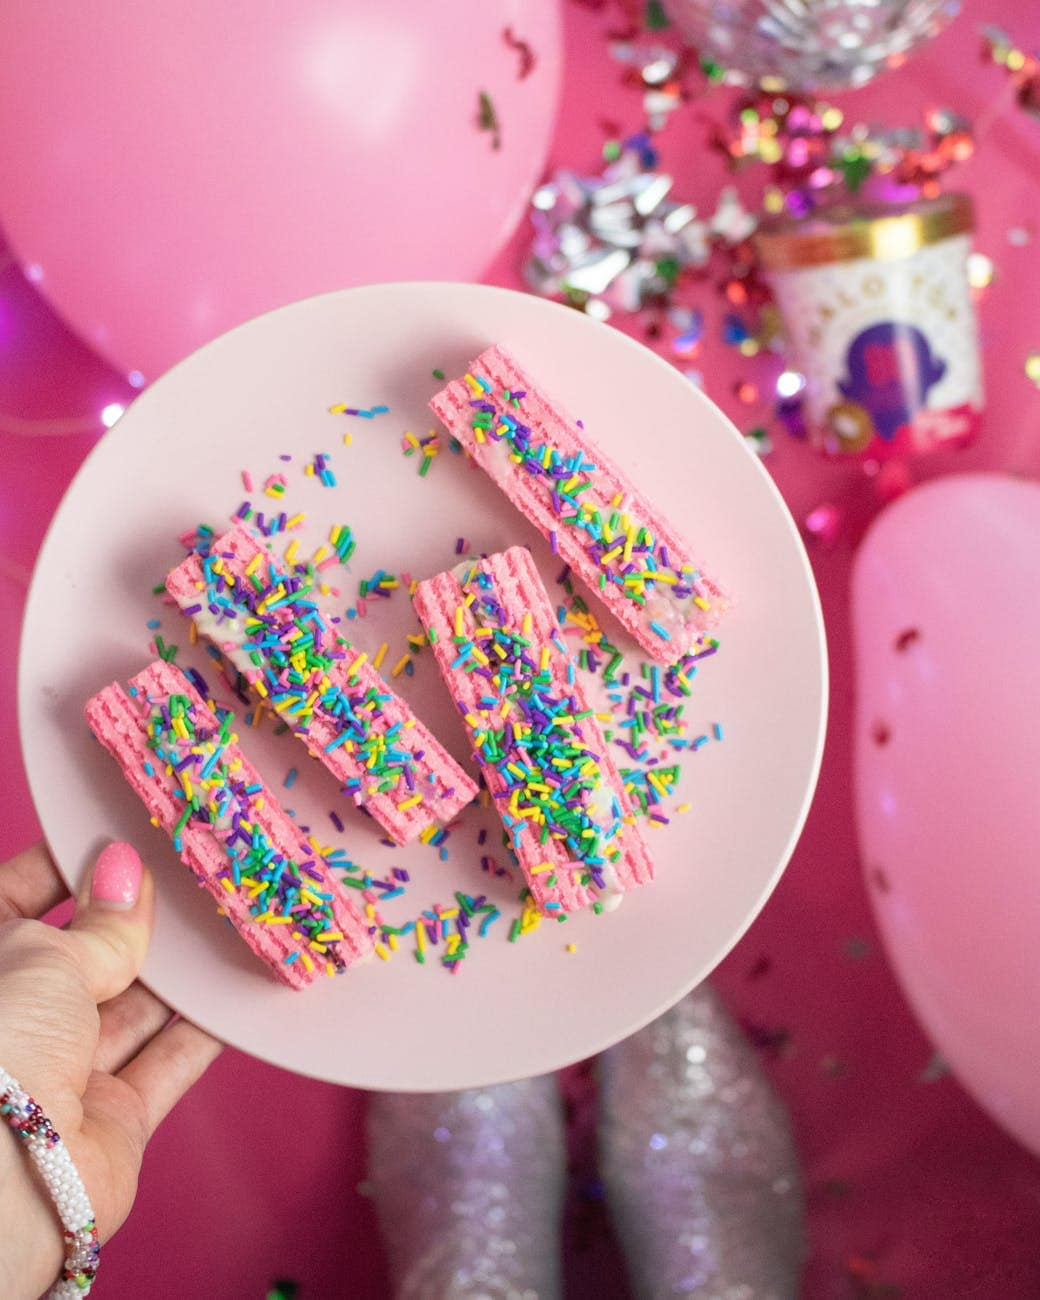 How to Plan the Ultimate 50th Birthday Party